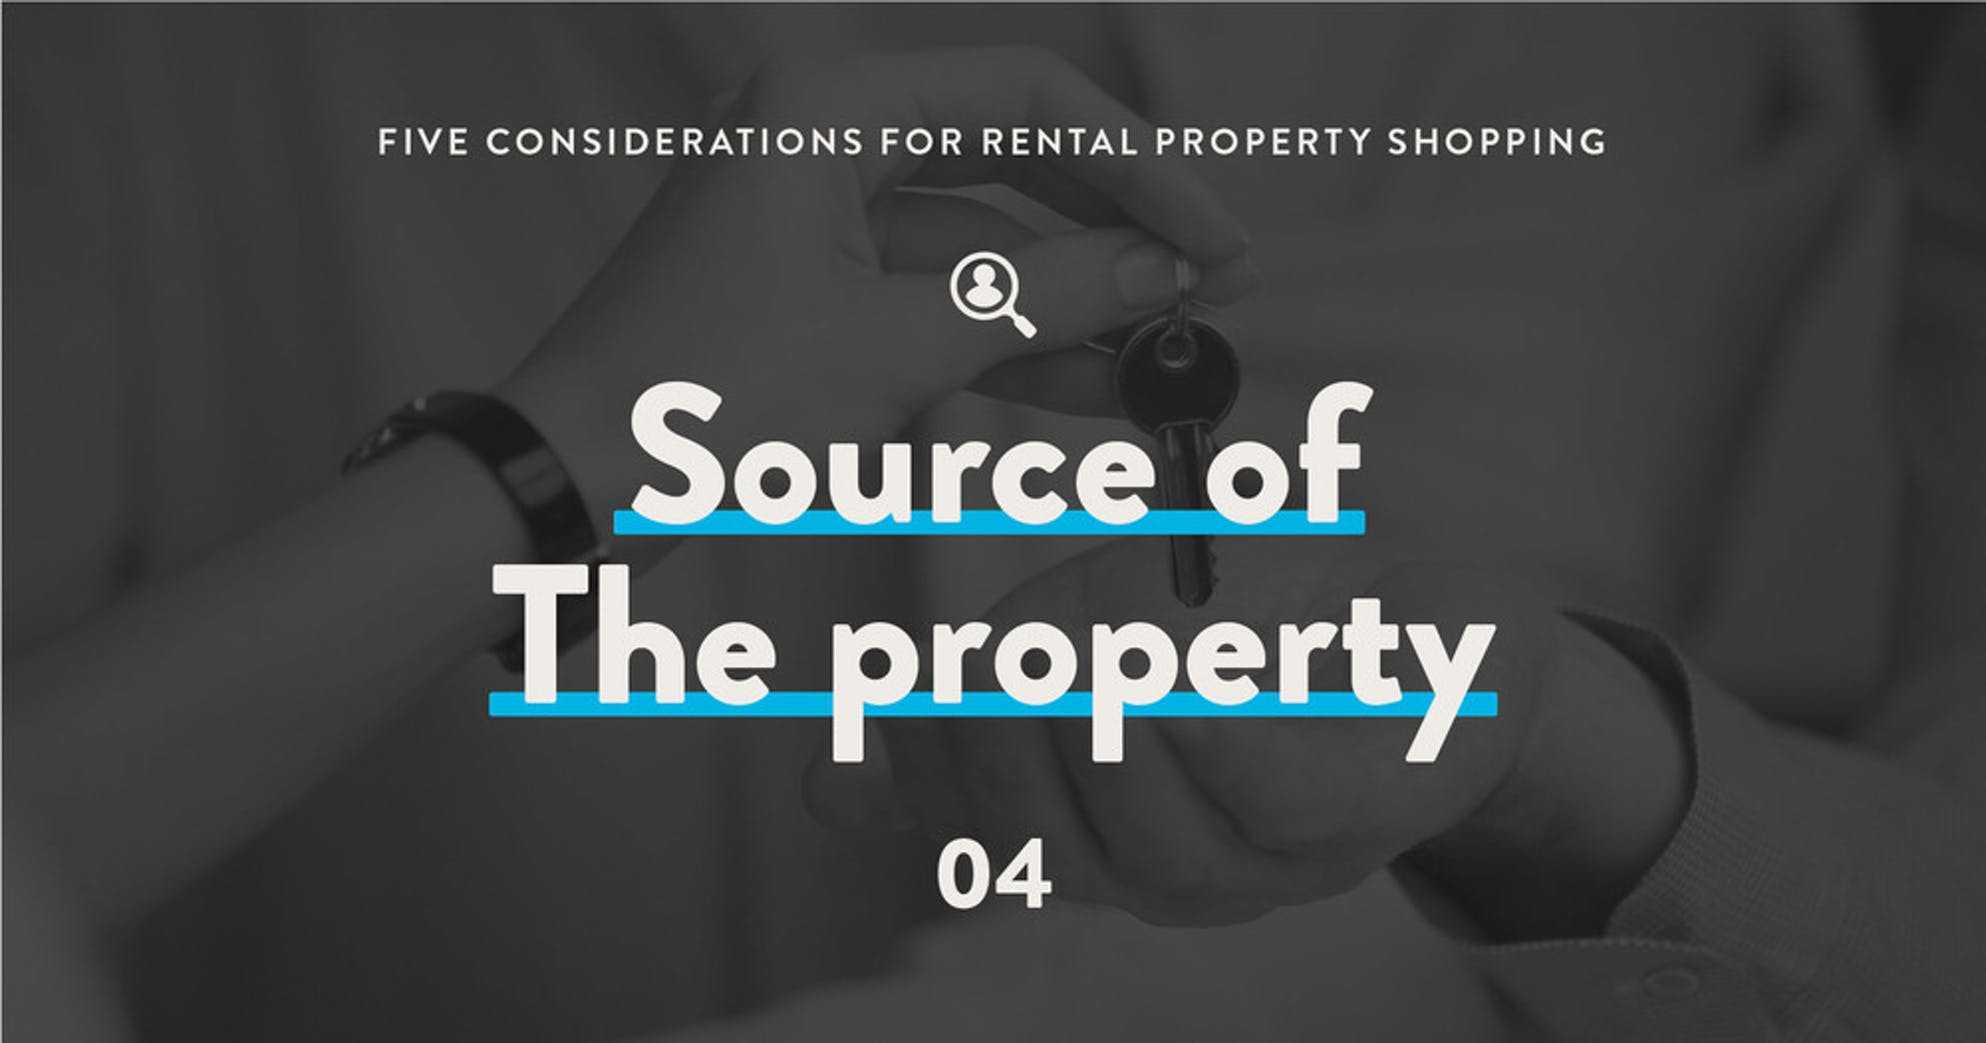 5 considerations for rental property shopping: 4 - Source of the Property